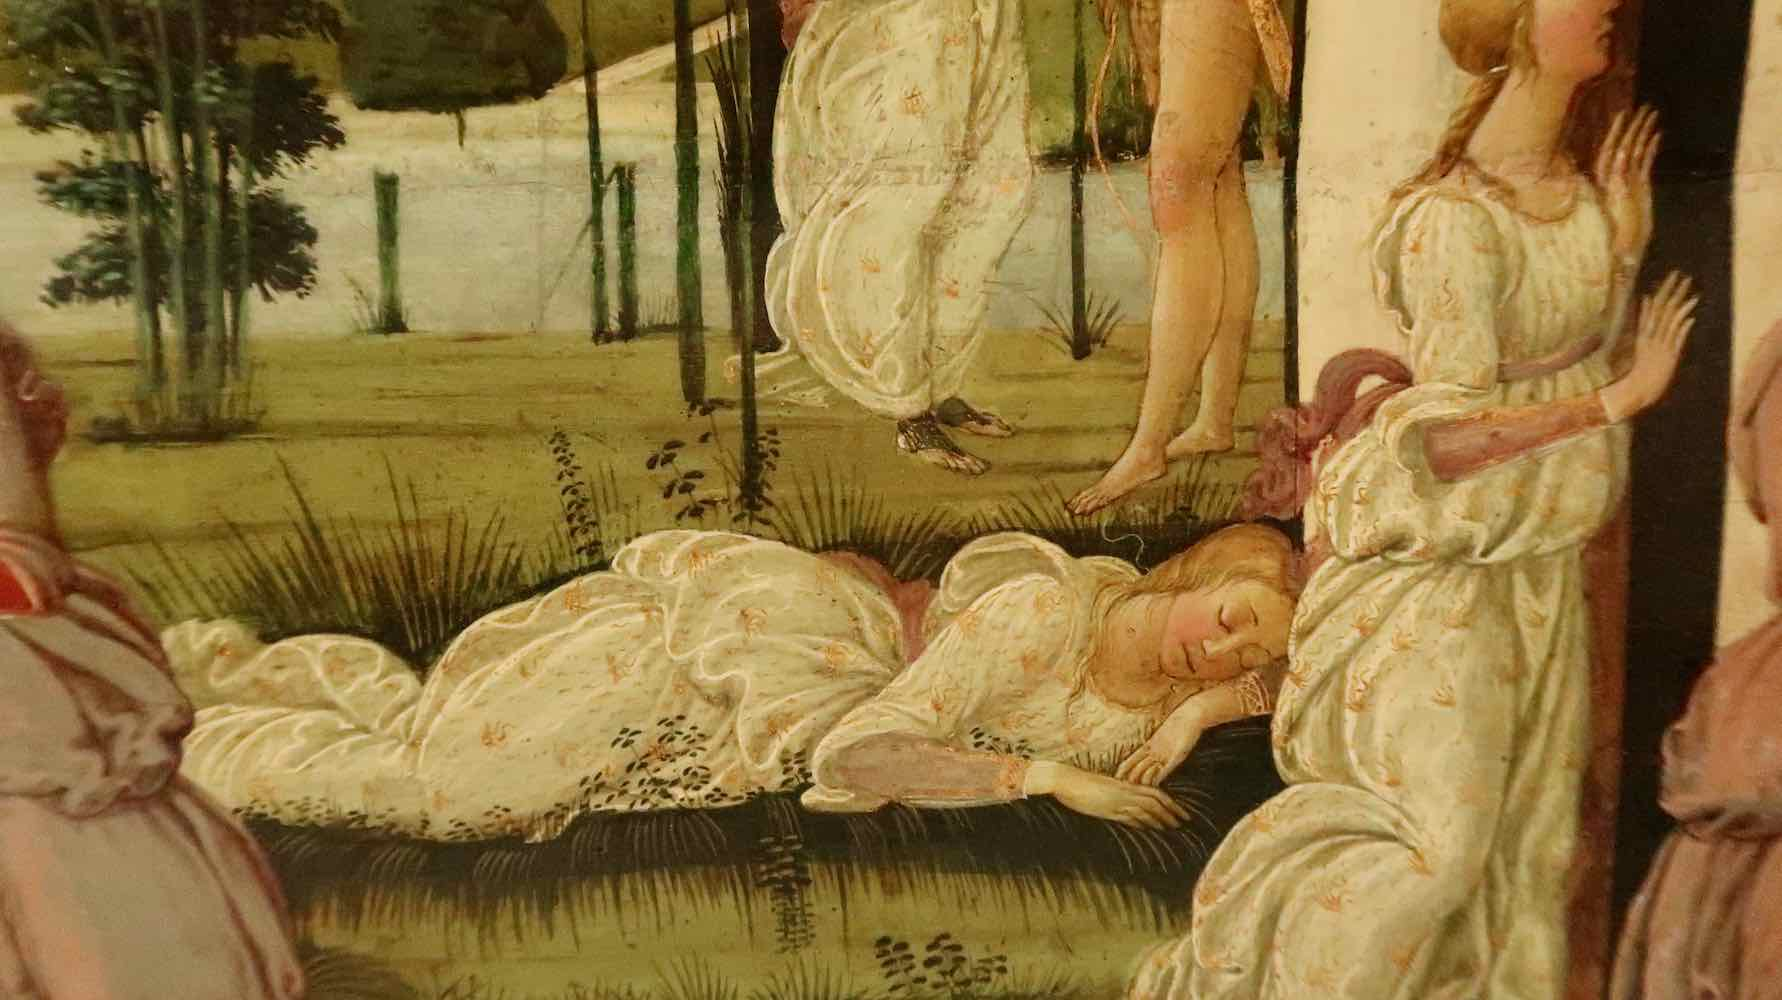 Psyche lands on a soft bower - a detail in a painting by Del Sellaio of Cupid and Psyche painted in 1473